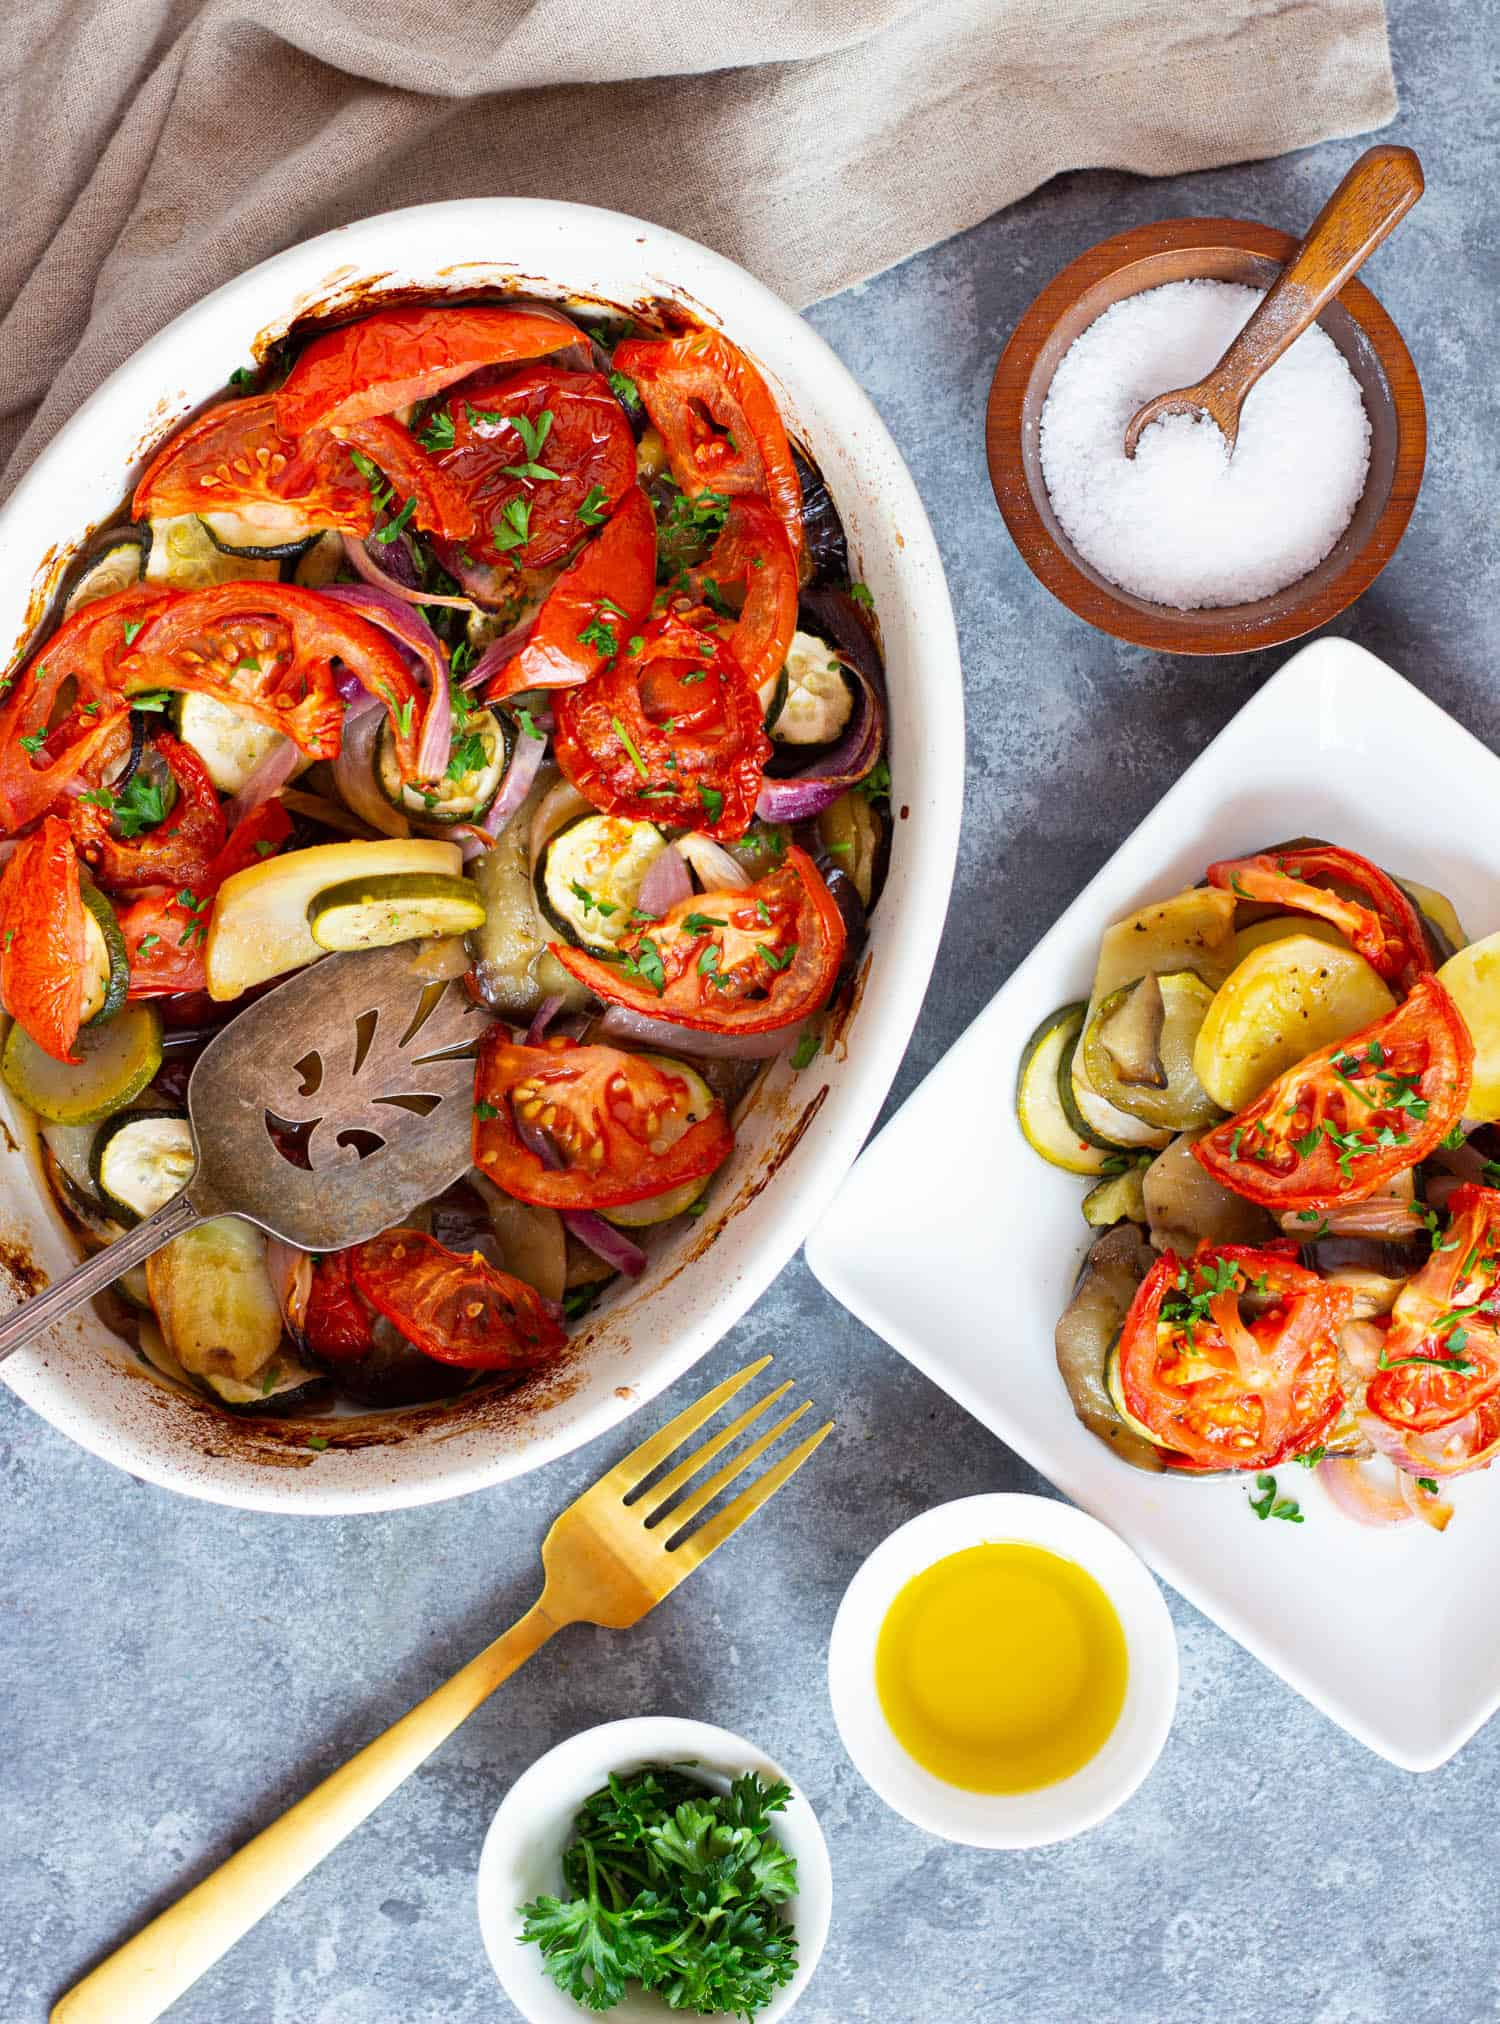 A dish of Greek roasted vegetables and a serving plate filled with vegetables.